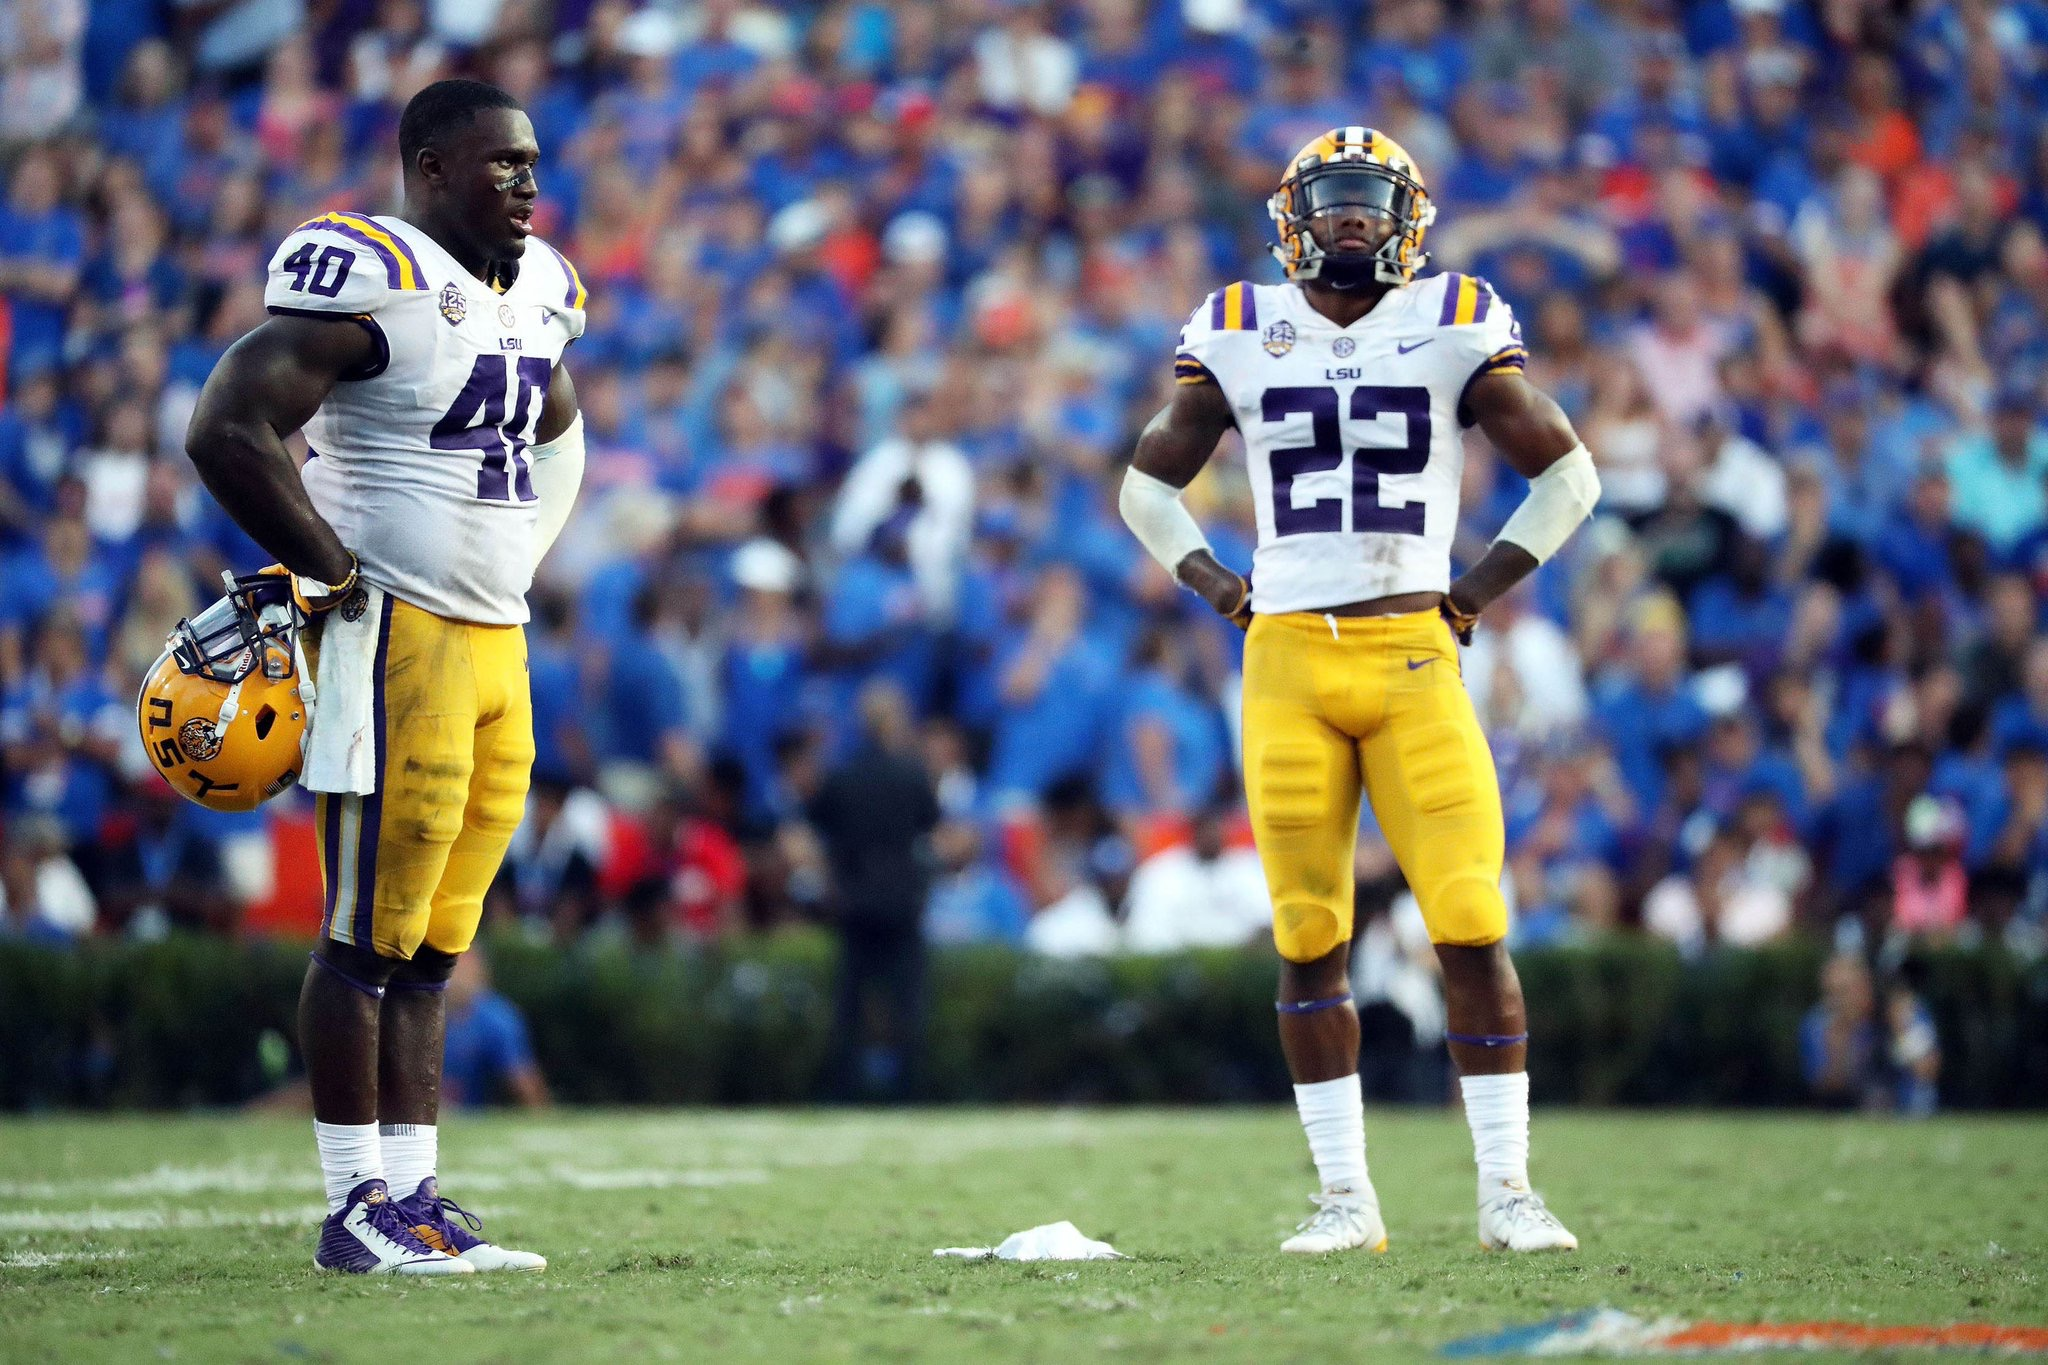 LSU drops to No. 13 in latest AP poll